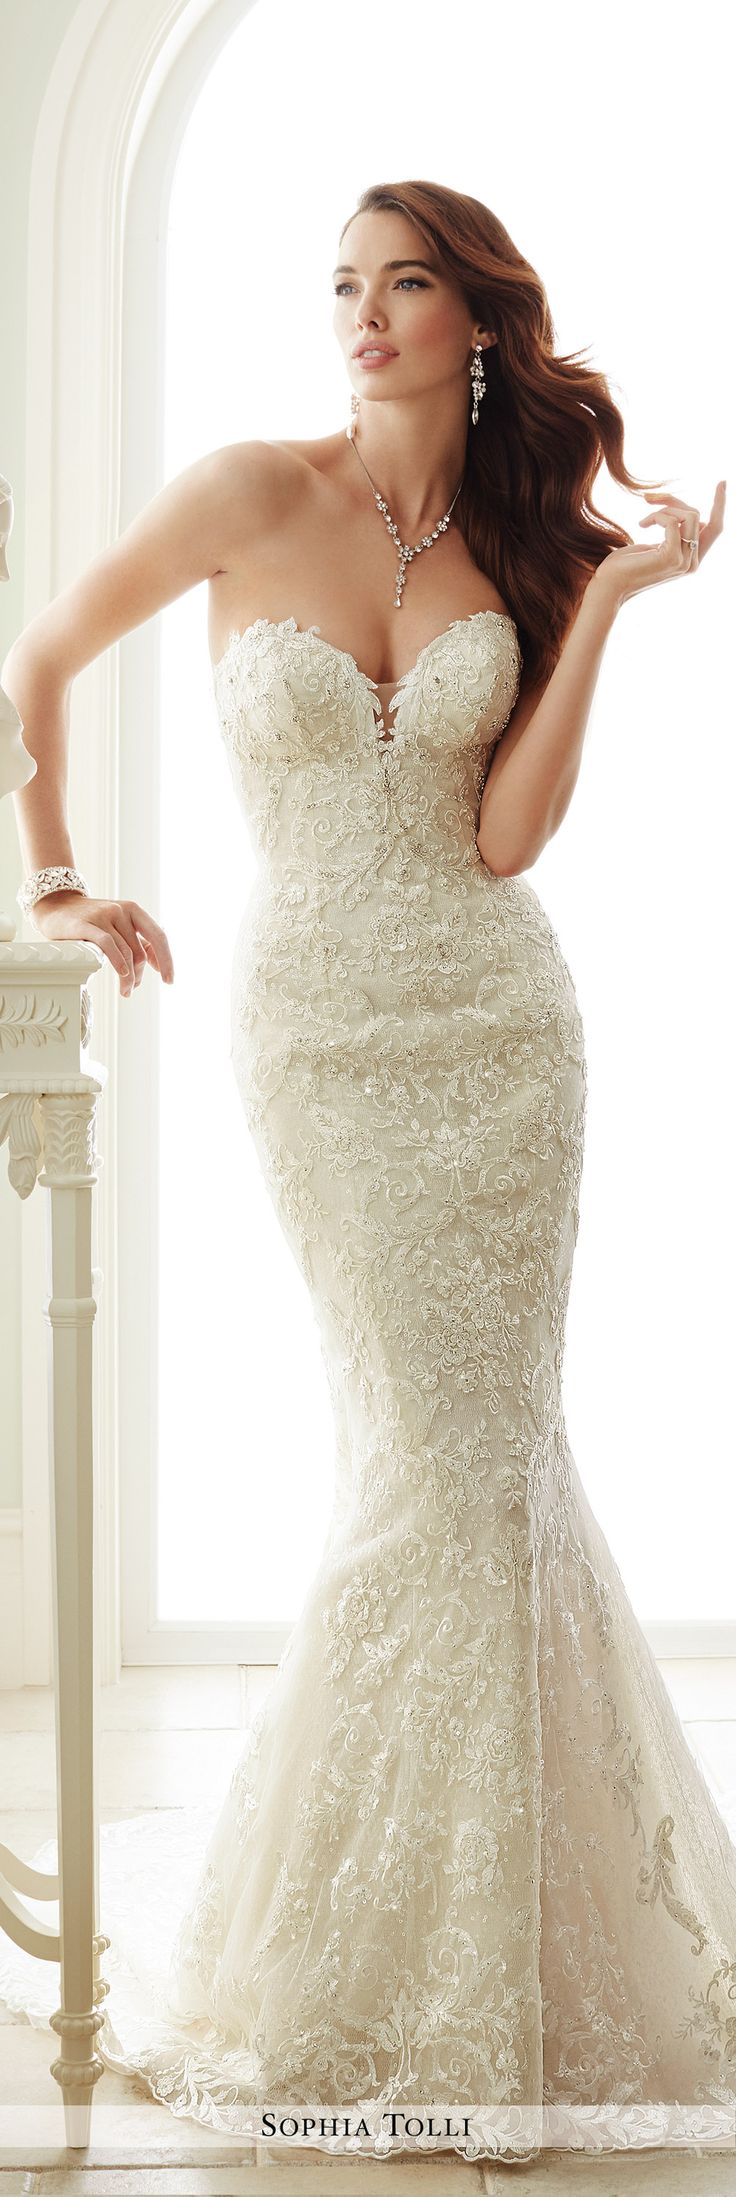 best dress images on pinterest wedding dressses marriage and bride